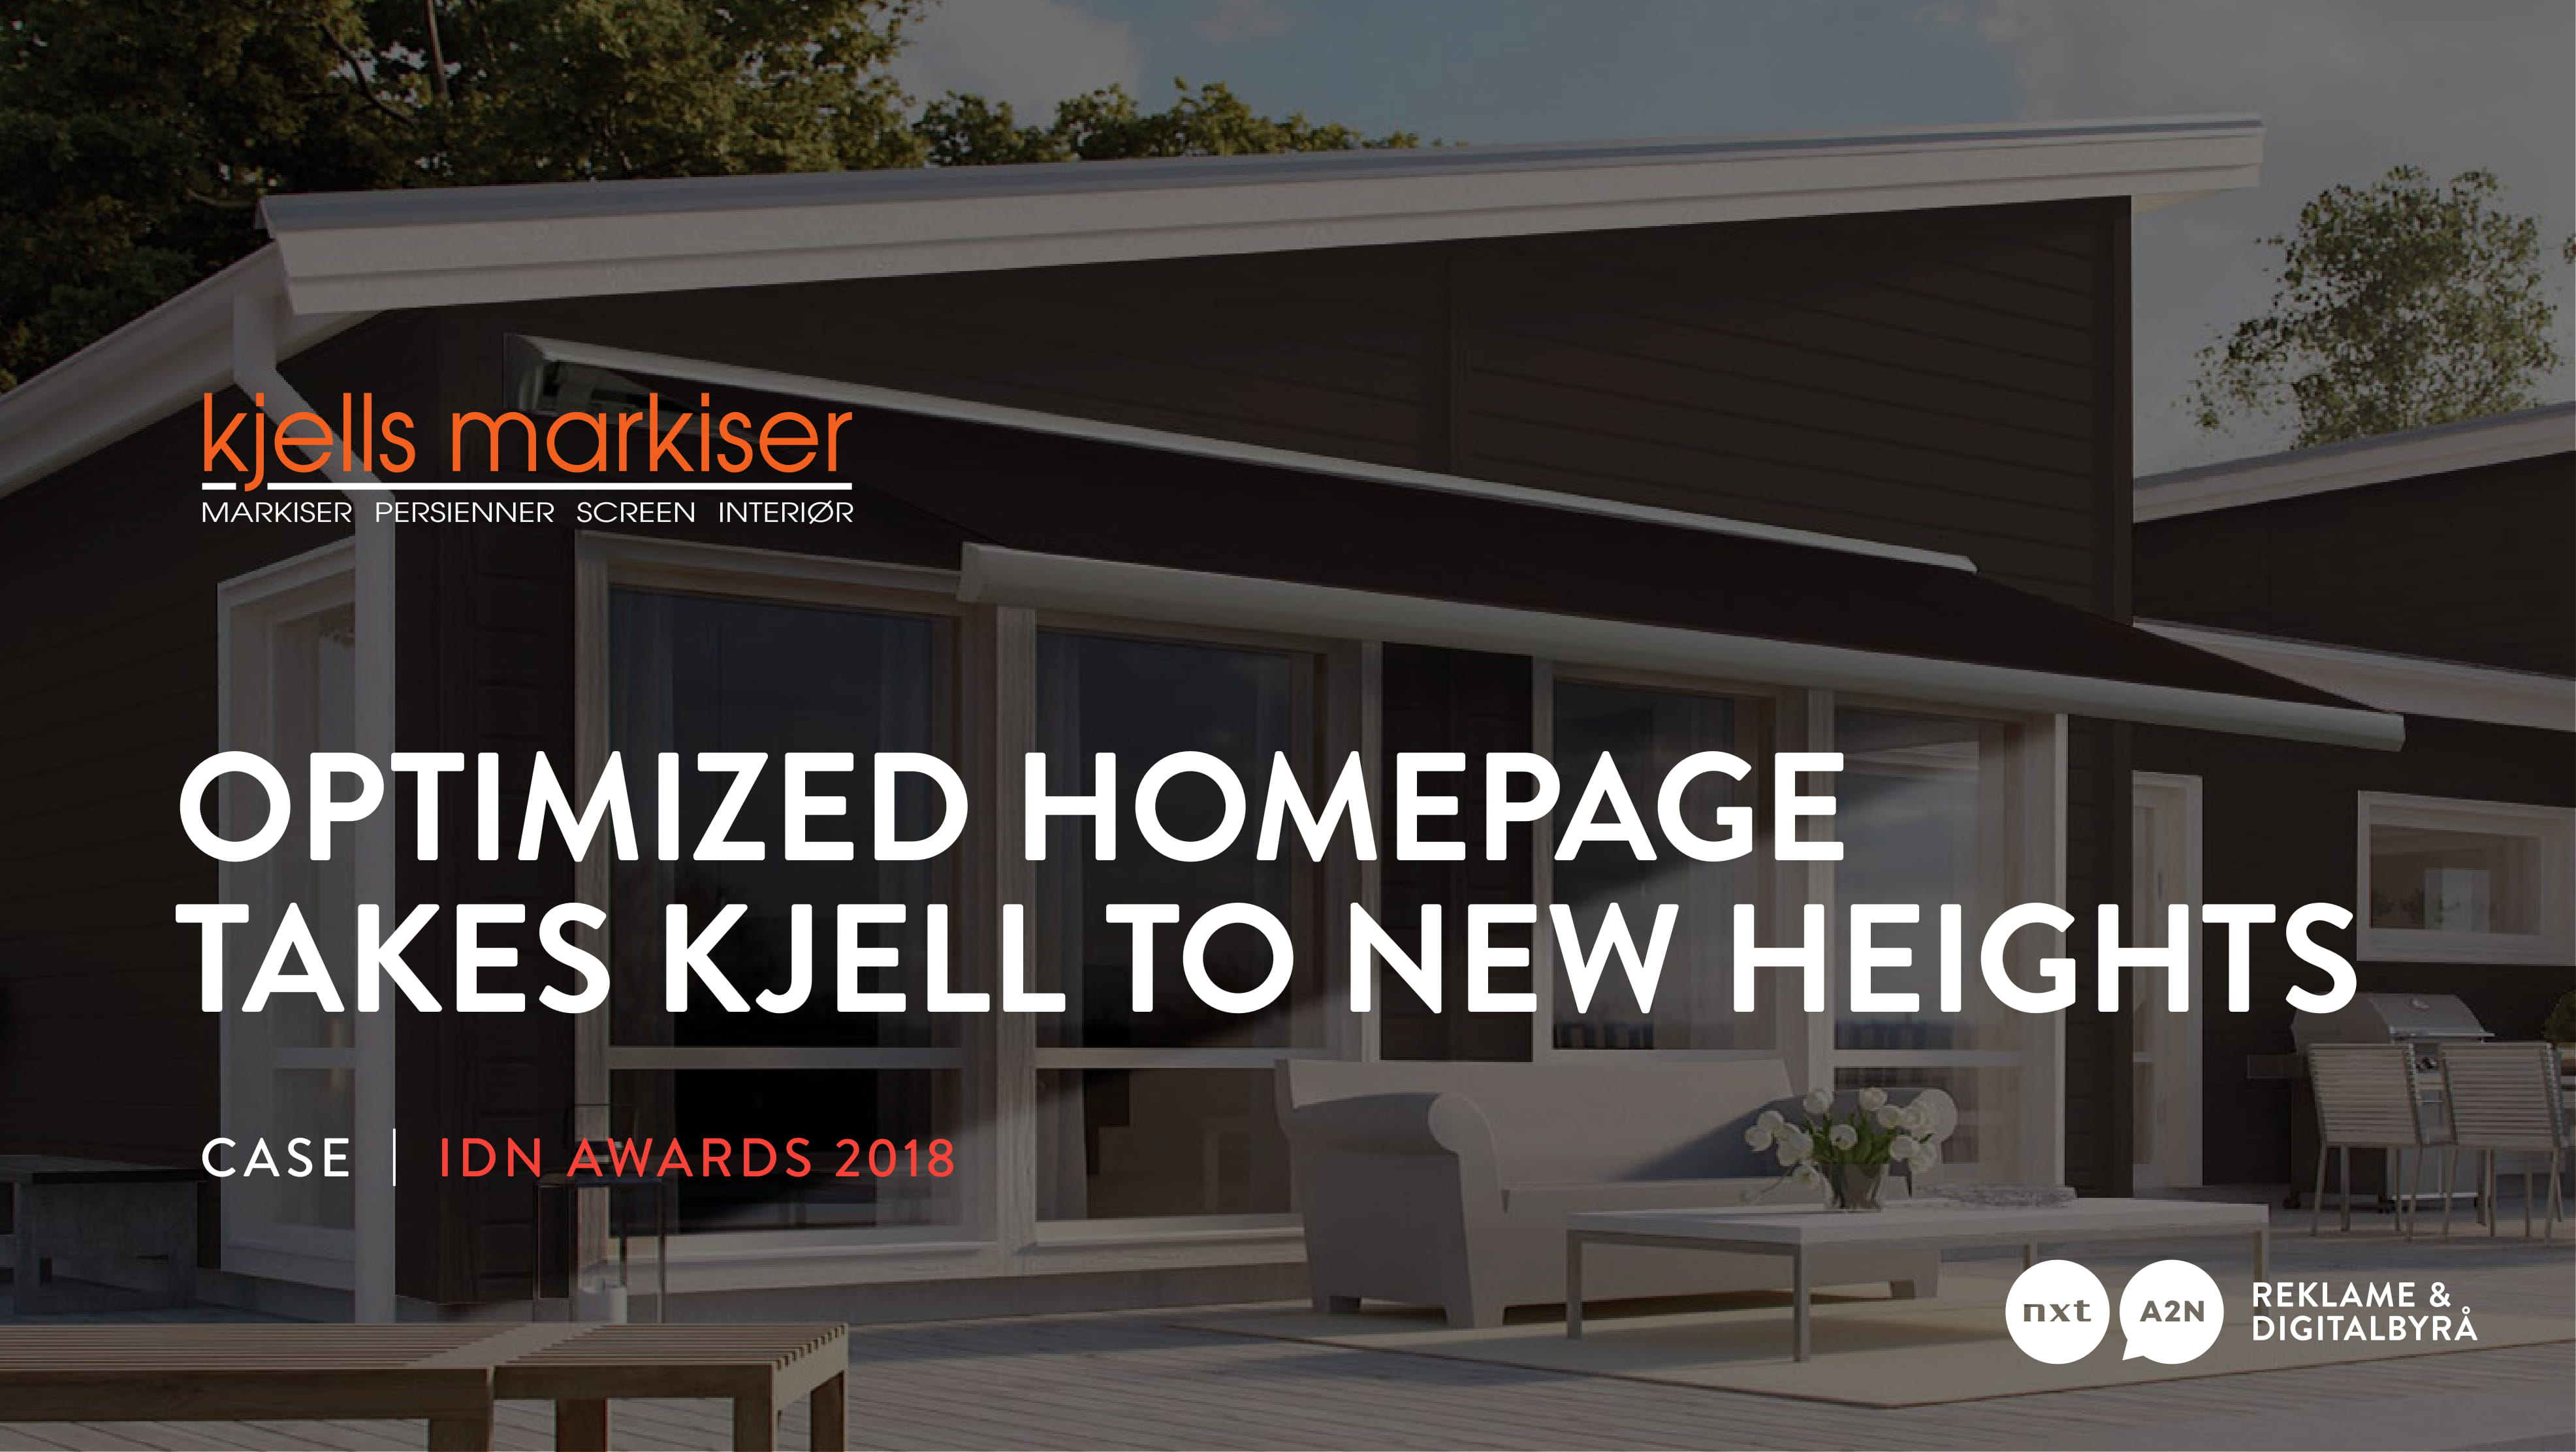 Optimized homepage takes Kjell to new heights